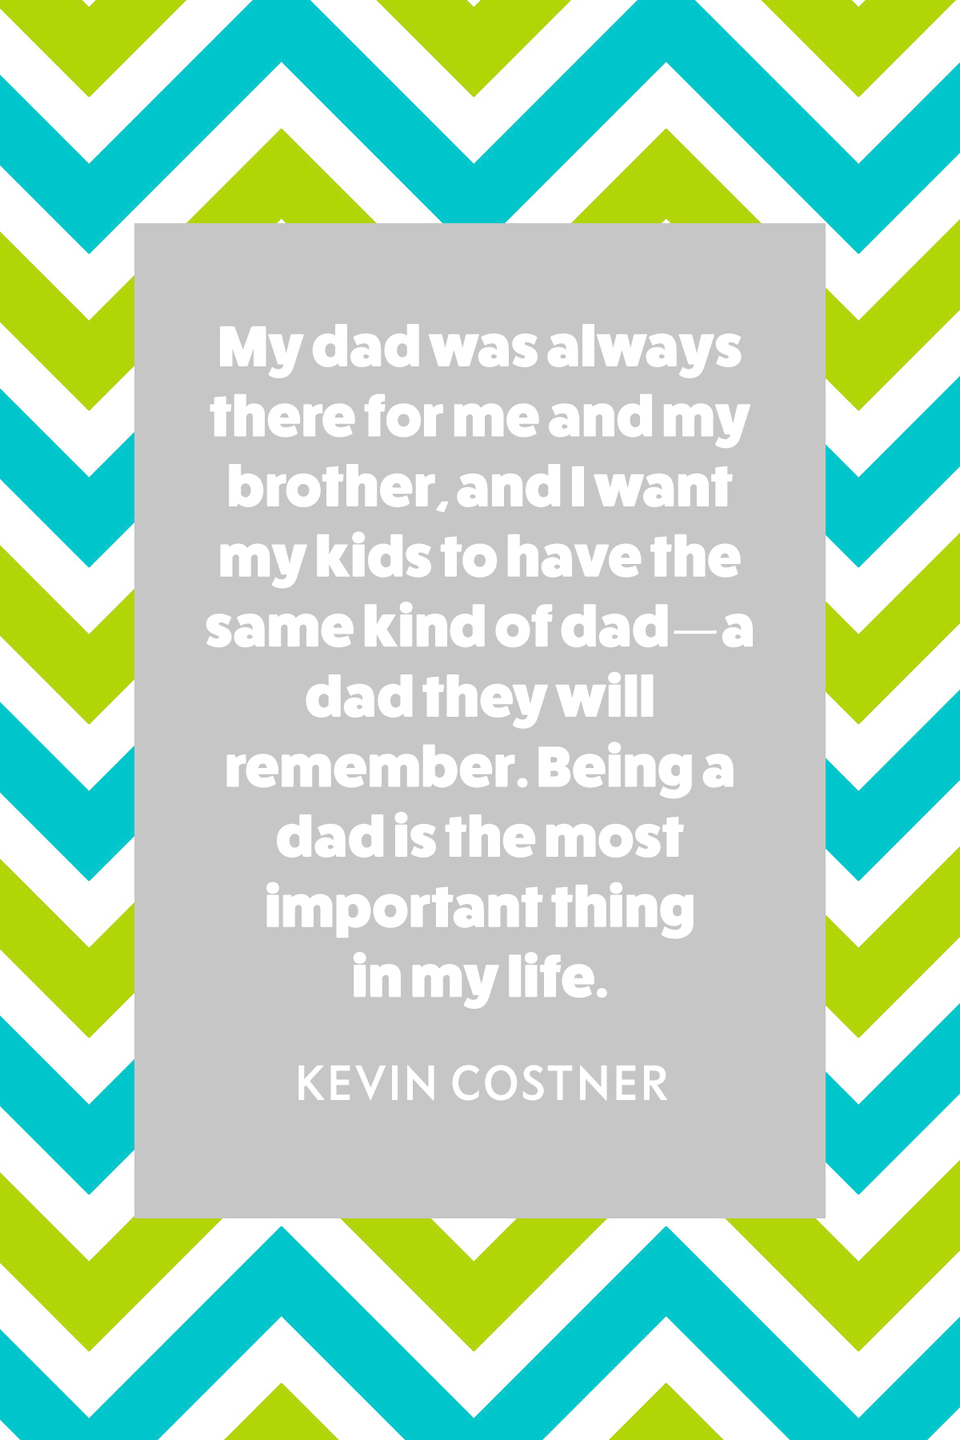 """<p>""""My dad was always there for me and my brother, and I want my kids to have the same kind of dad—a dad they will remember. Being a dad is the most important thing in my life,"""" Costner told <em><a href=""""https://www.closerweekly.com/posts/kevin-costner-fatherhood-162429/"""" rel=""""nofollow noopener"""" target=""""_blank"""" data-ylk=""""slk:Closer Weekly"""" class=""""link rapid-noclick-resp"""">Closer Weekly</a></em> in 2018. </p>"""